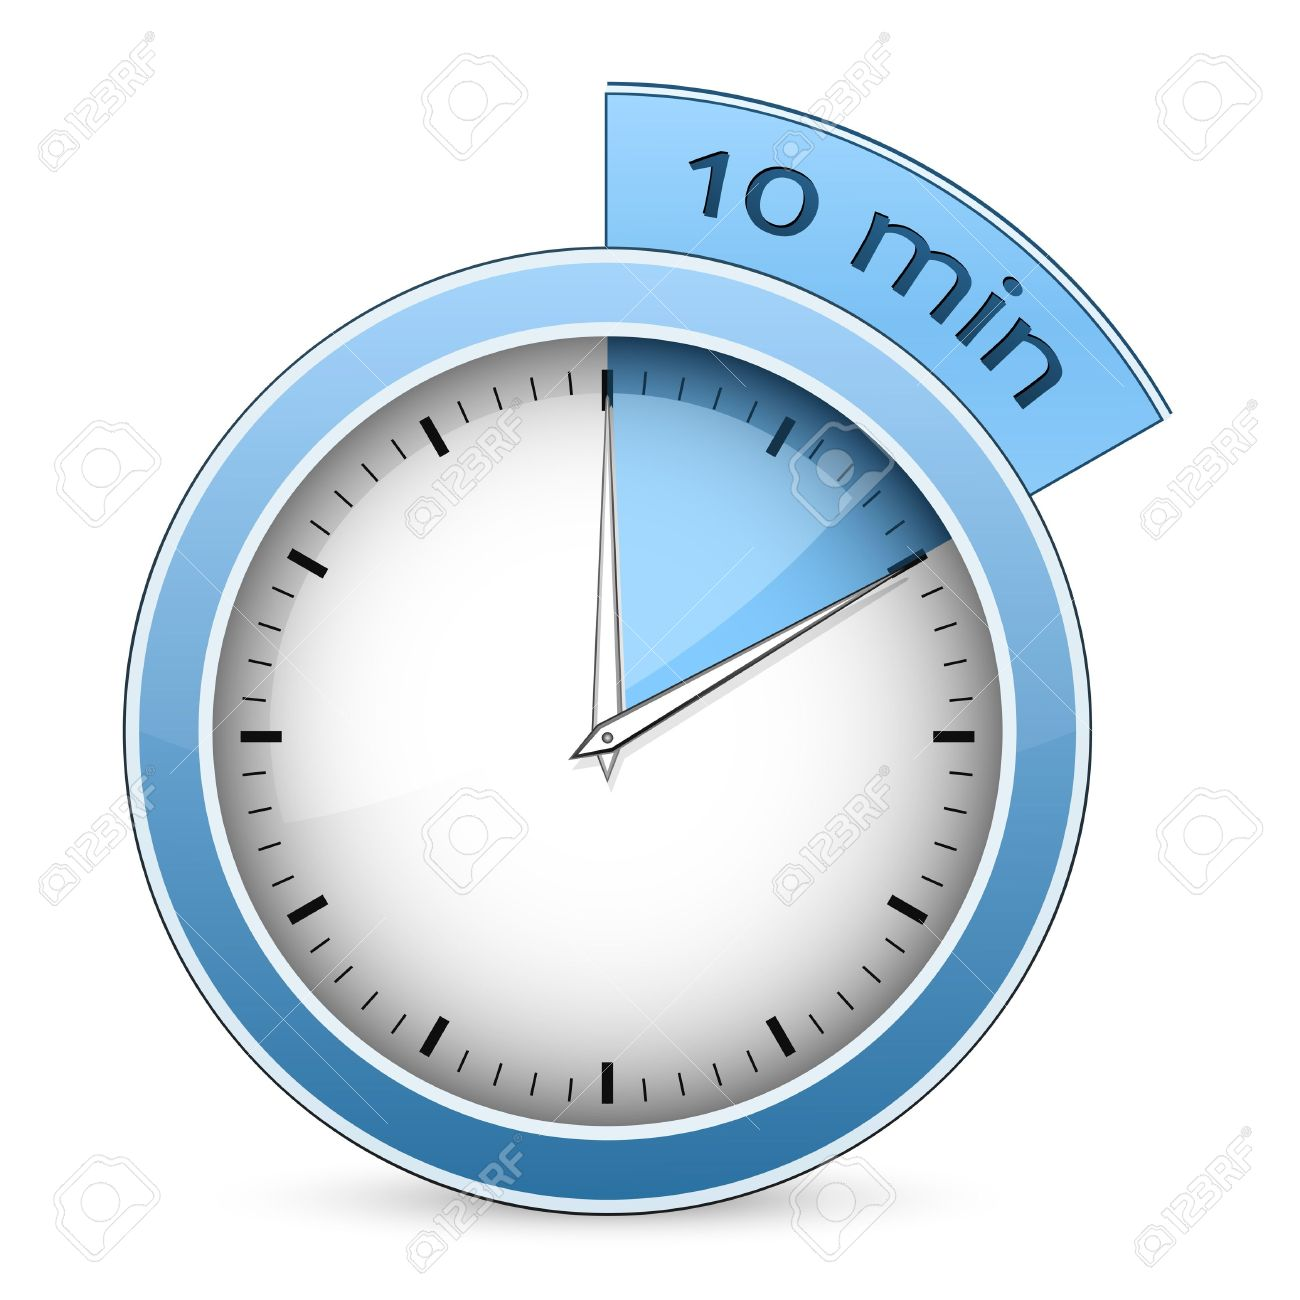 Blue Timer 10 Minutes Vector Illustration Royalty Free Cliparts ...